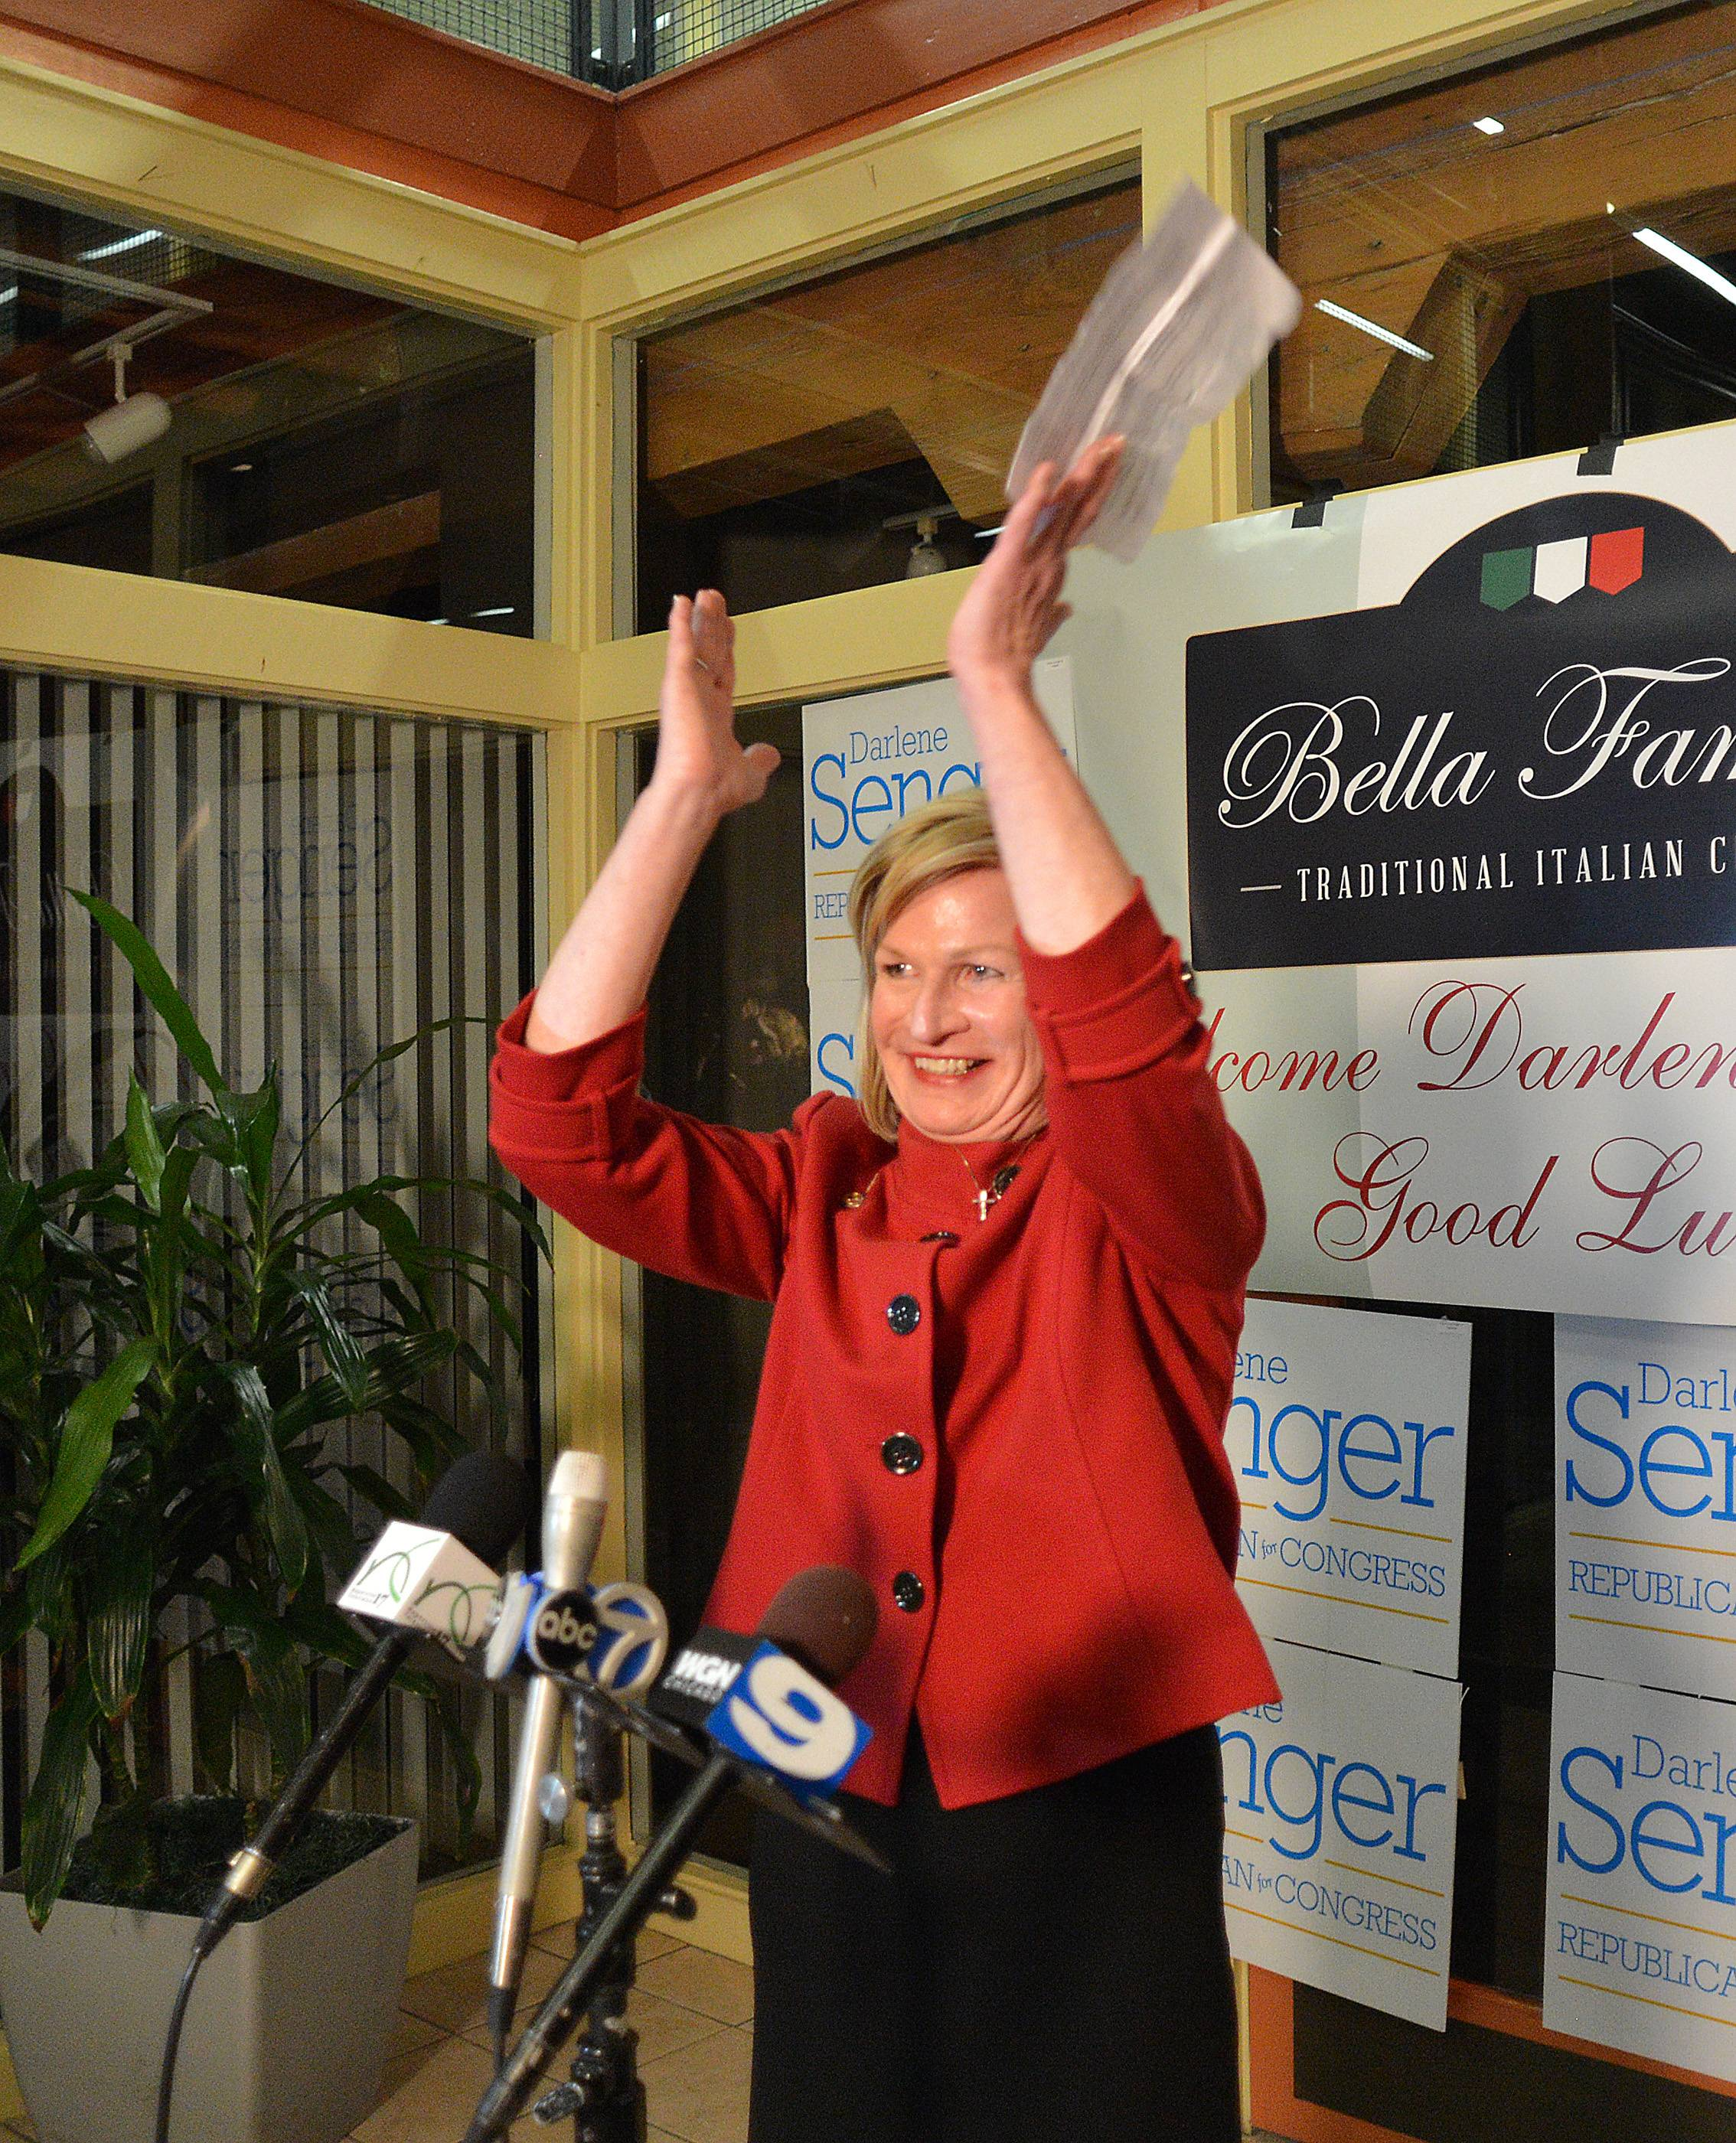 11th Congressional candidate Darlene Senger of Naperville claims victory.